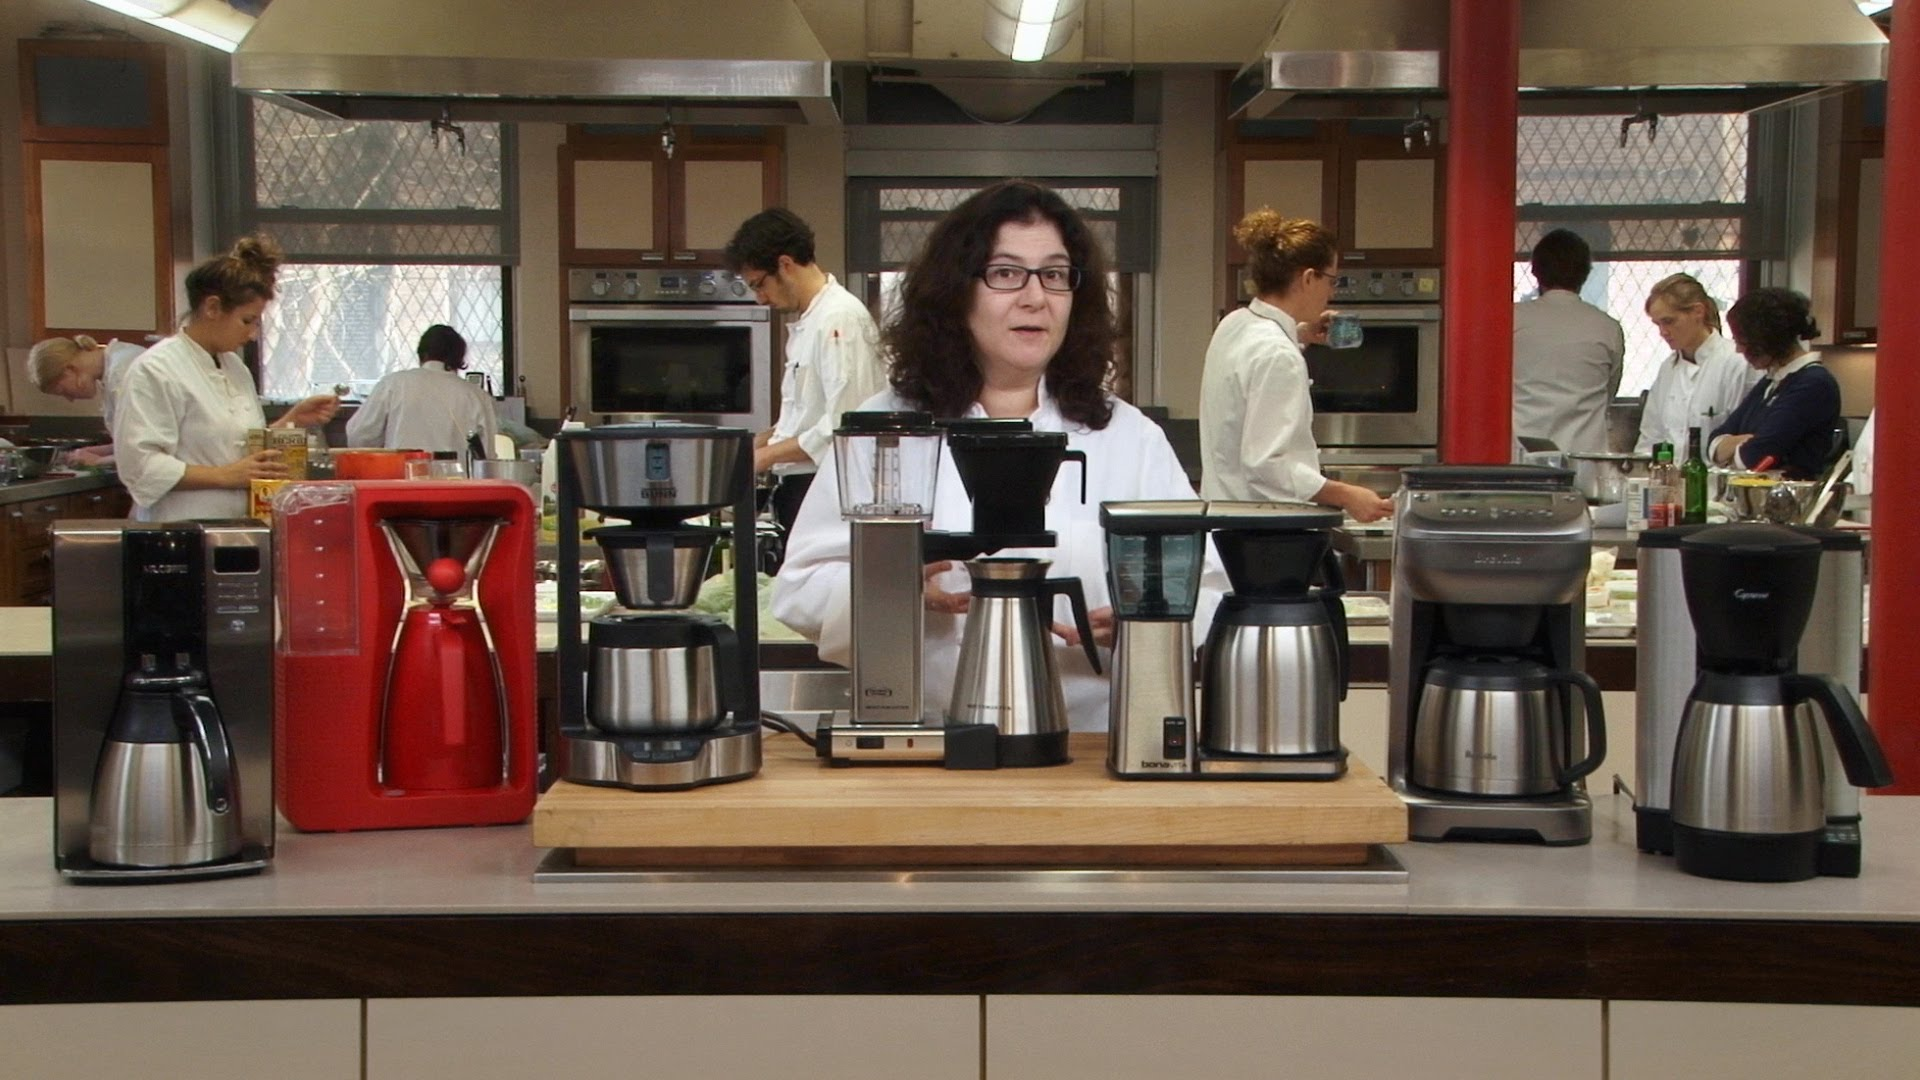 Coffee Maker Buying Guide – 6 Tips To Buying The Perfect Coffee Maker For YOU